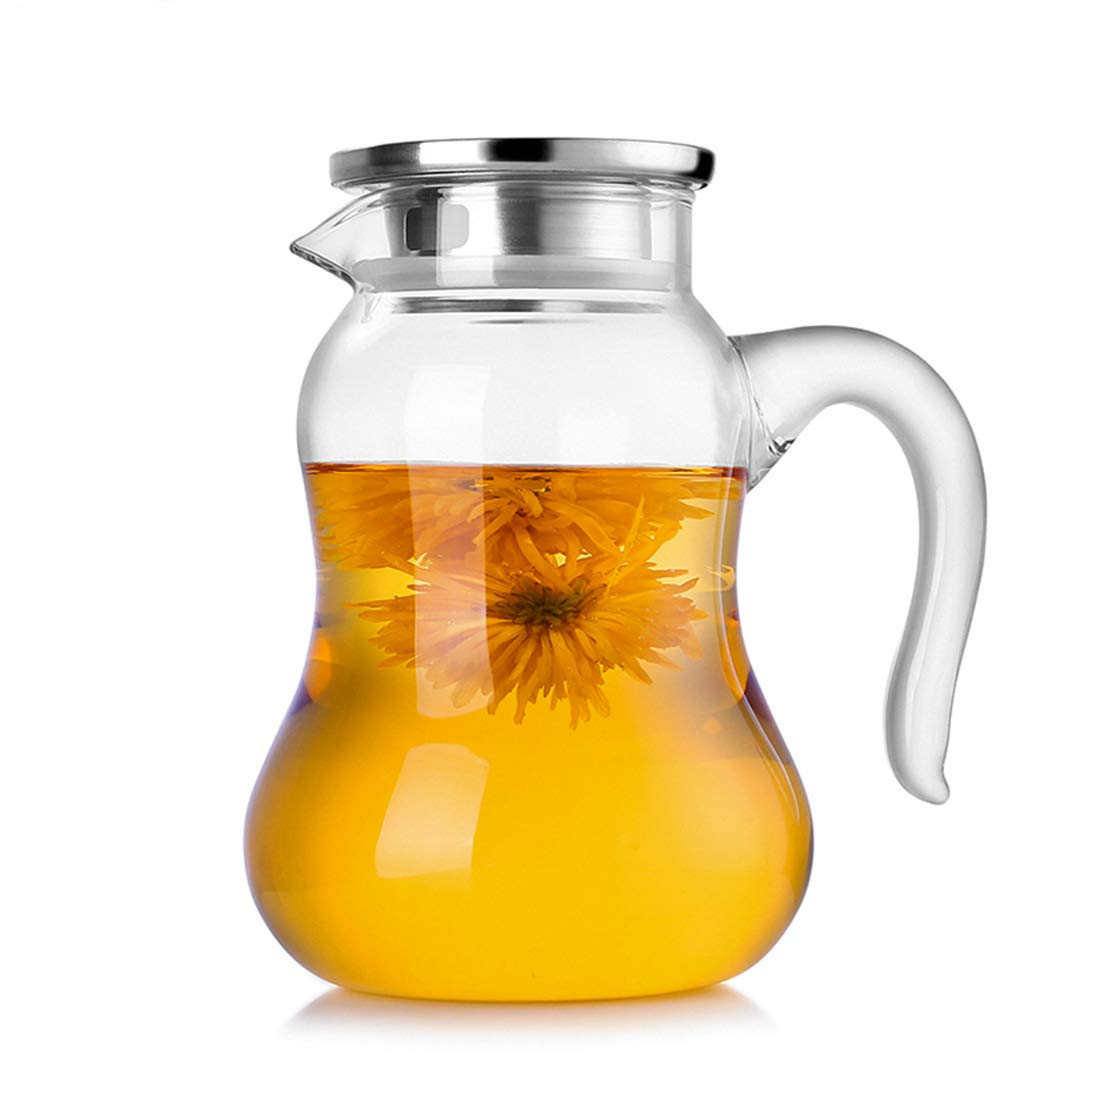 Water Pitcher 50 Oz,50 Oz Glass Pitcher with Lid,Glass Water Pitcher with Lid and Handle,Glass Juice Pitcher with Lid and Handle,50 Oz Glass Carafe